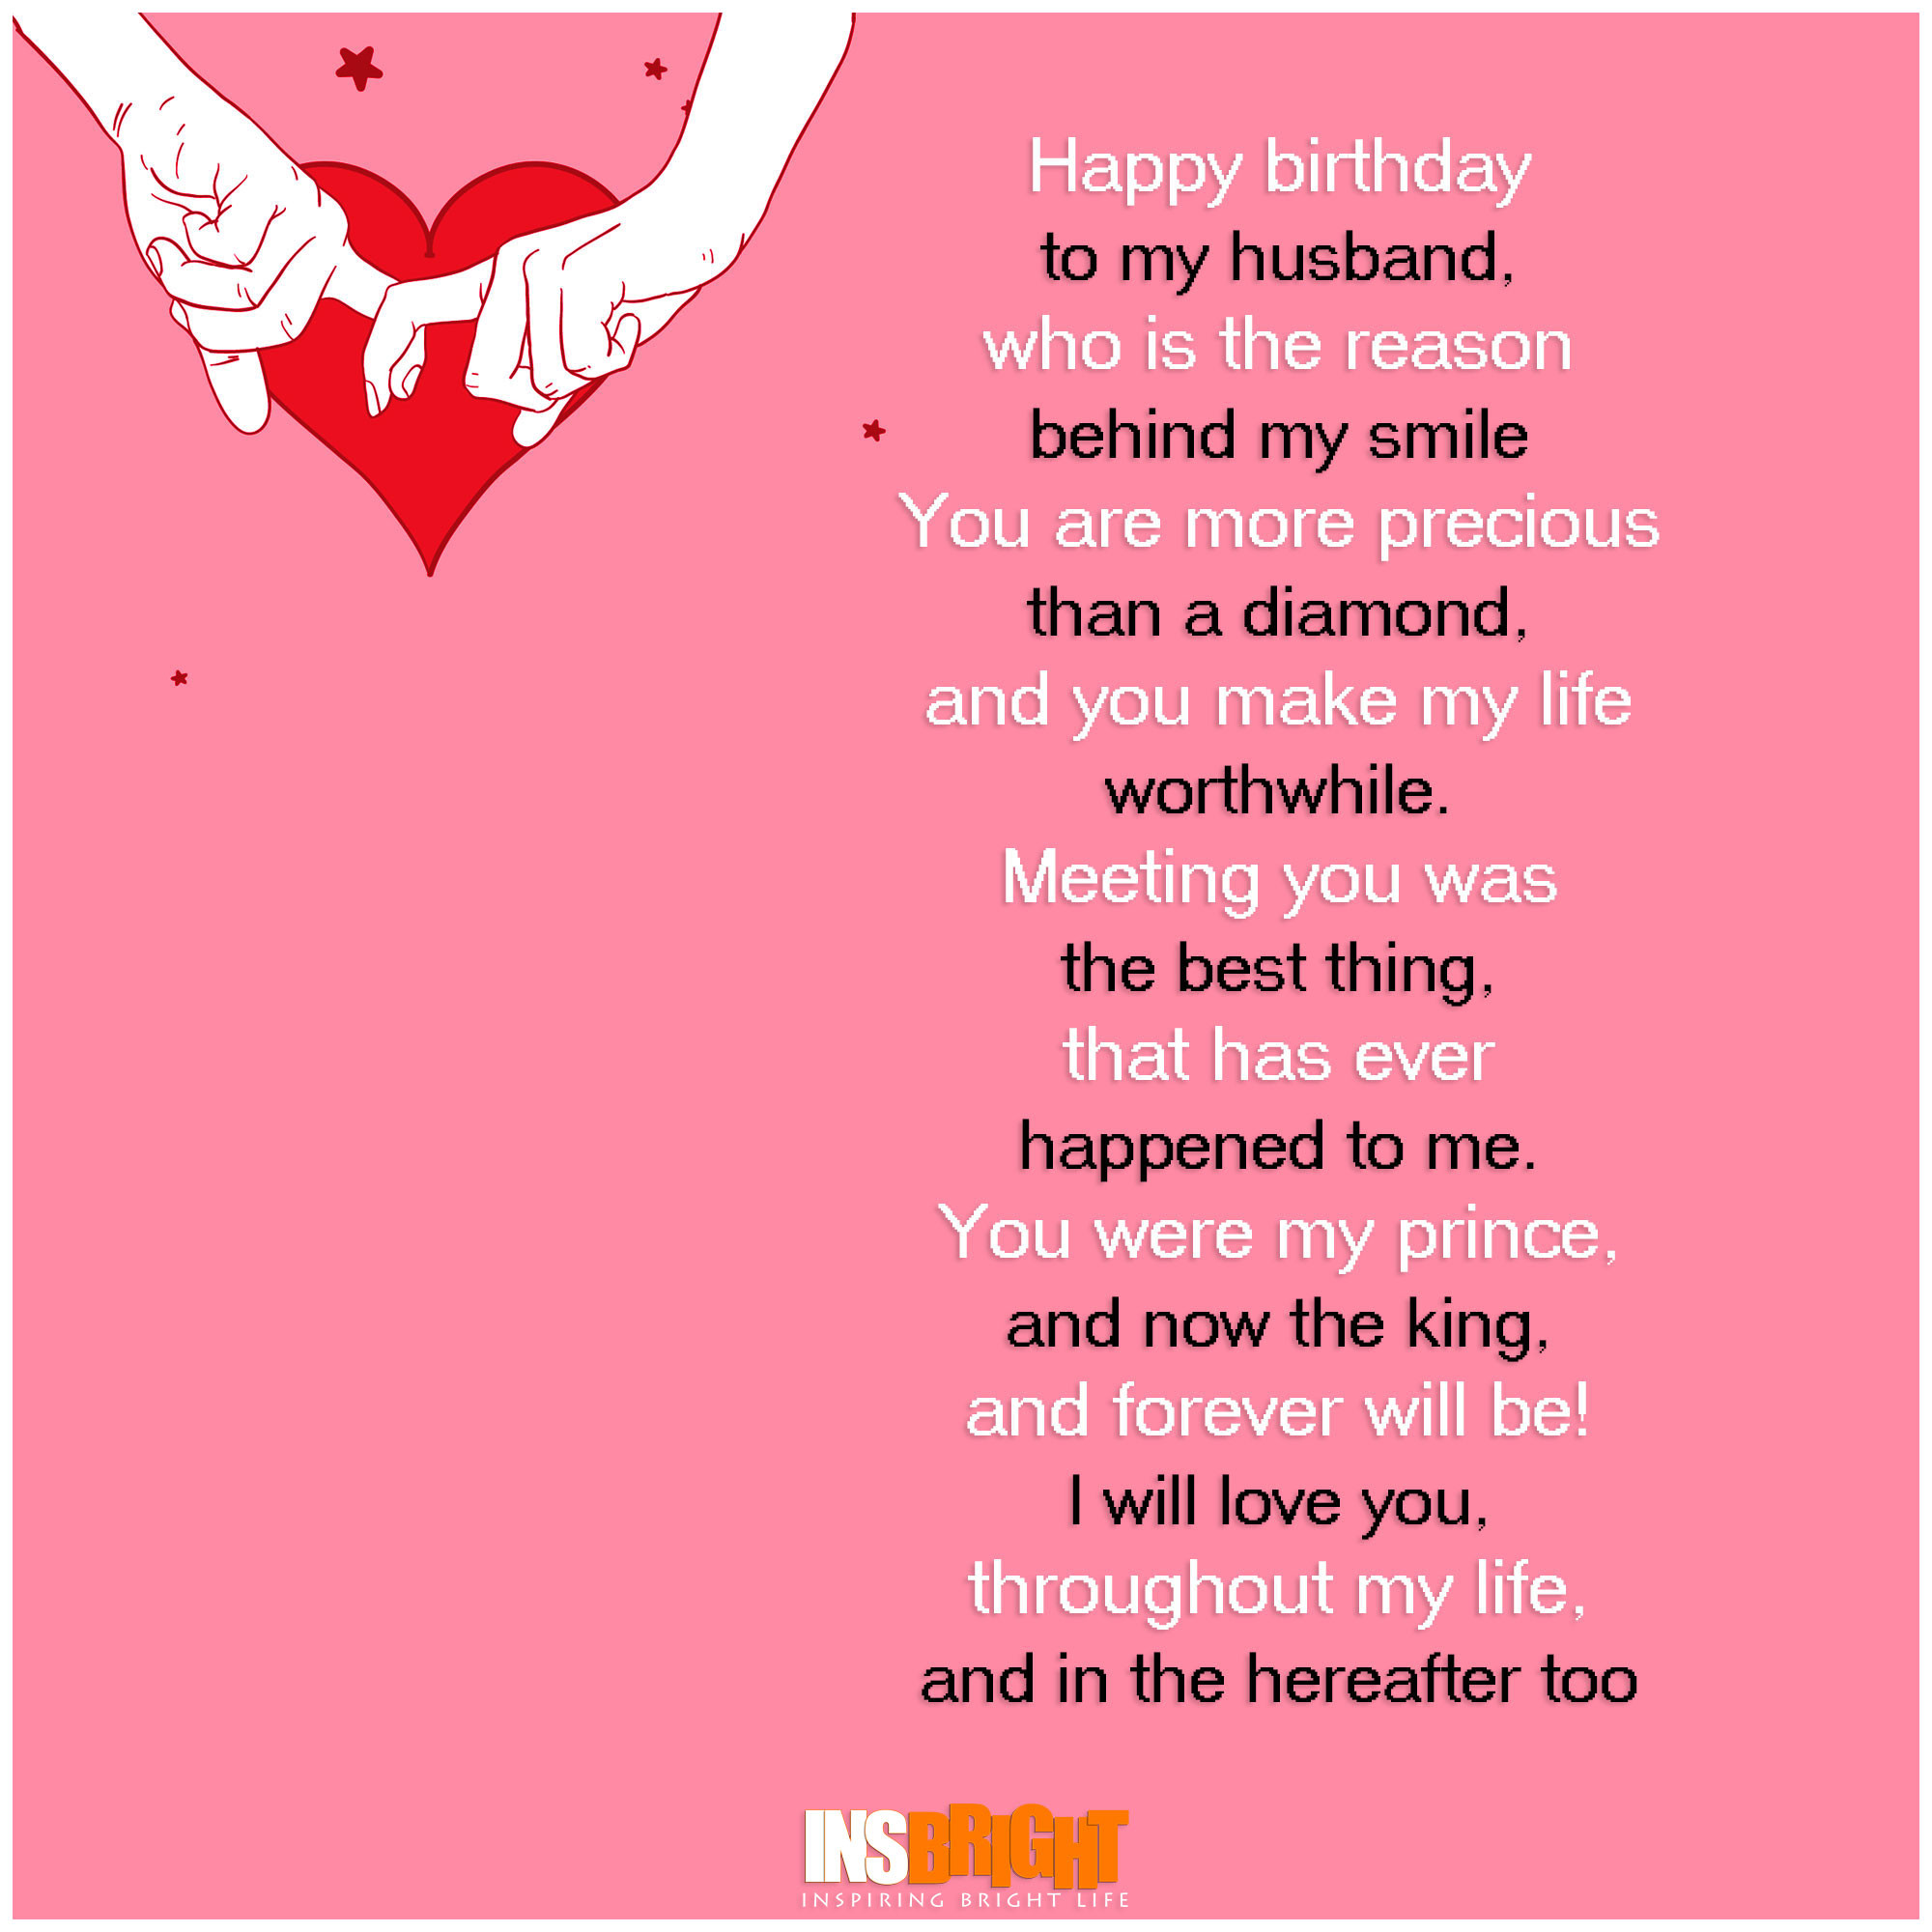 Birthday Wishes Poems  Romantic Happy Birthday Poems For Husband From Wife